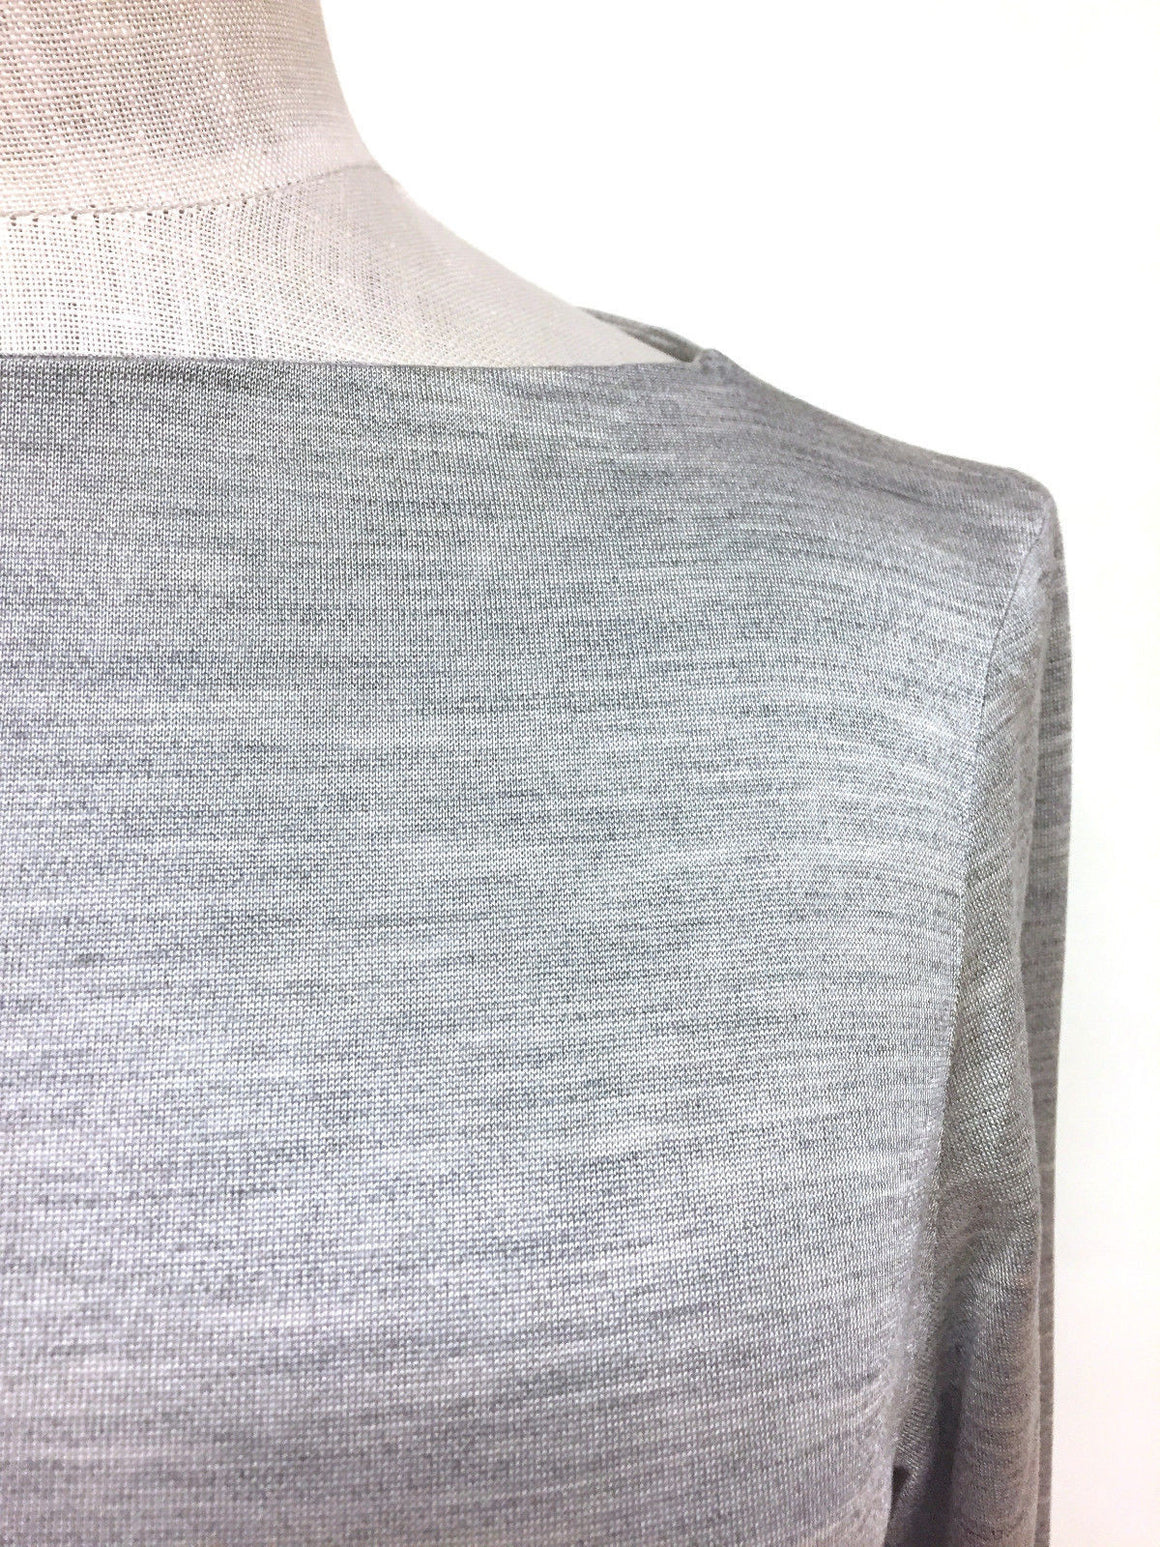 bisbiz.com HERMES Silver-Gray Silk Long Sleeve Double-Face Knit T-Shirt Top Blouse Size: 36 - Small - Bis Designer Resale